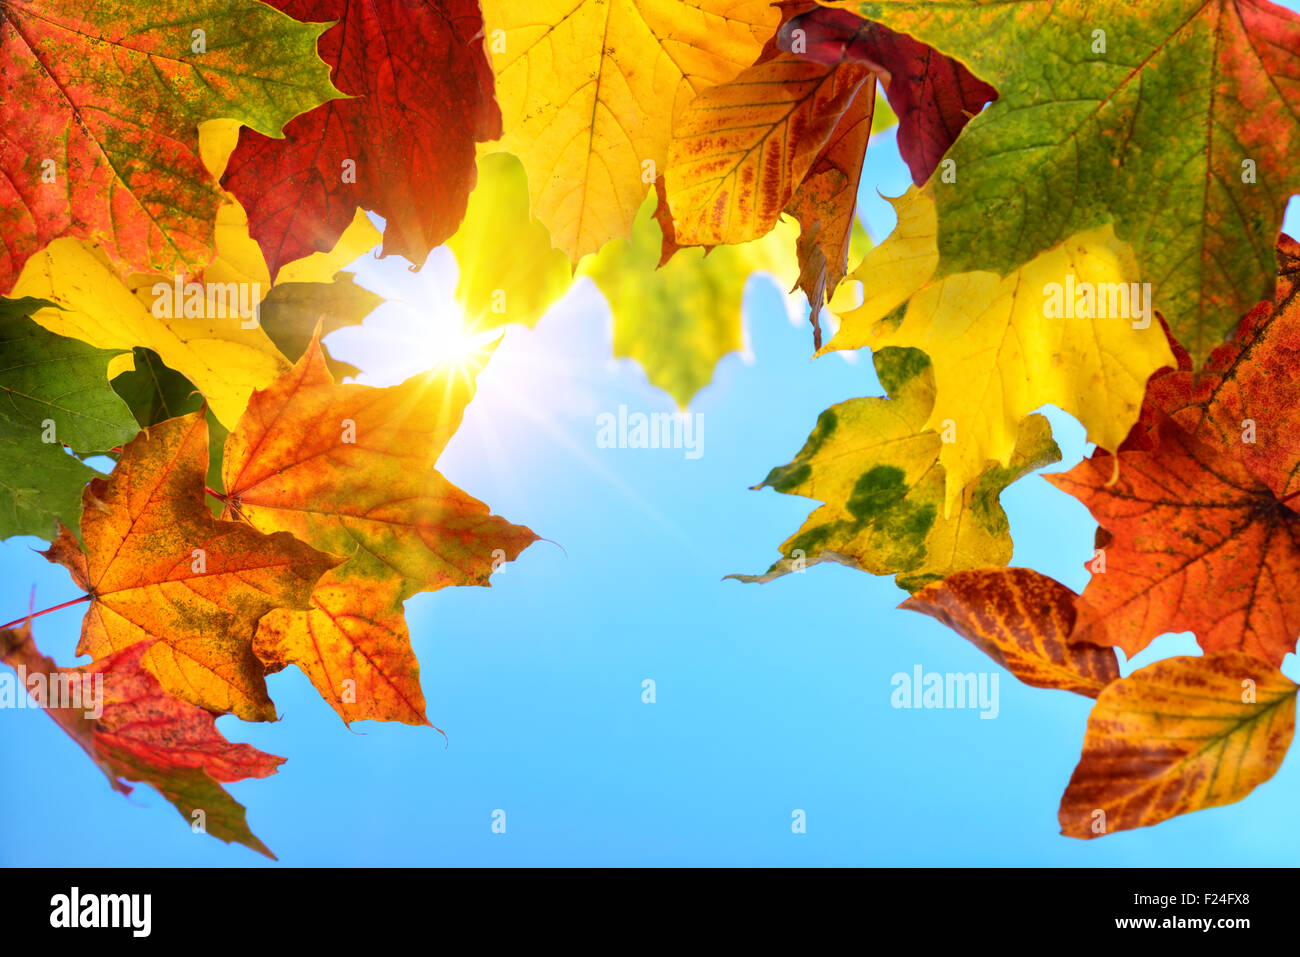 Colourful autumn leaves in the foreground framing the clear blue sky and the sun in the background - Stock Image